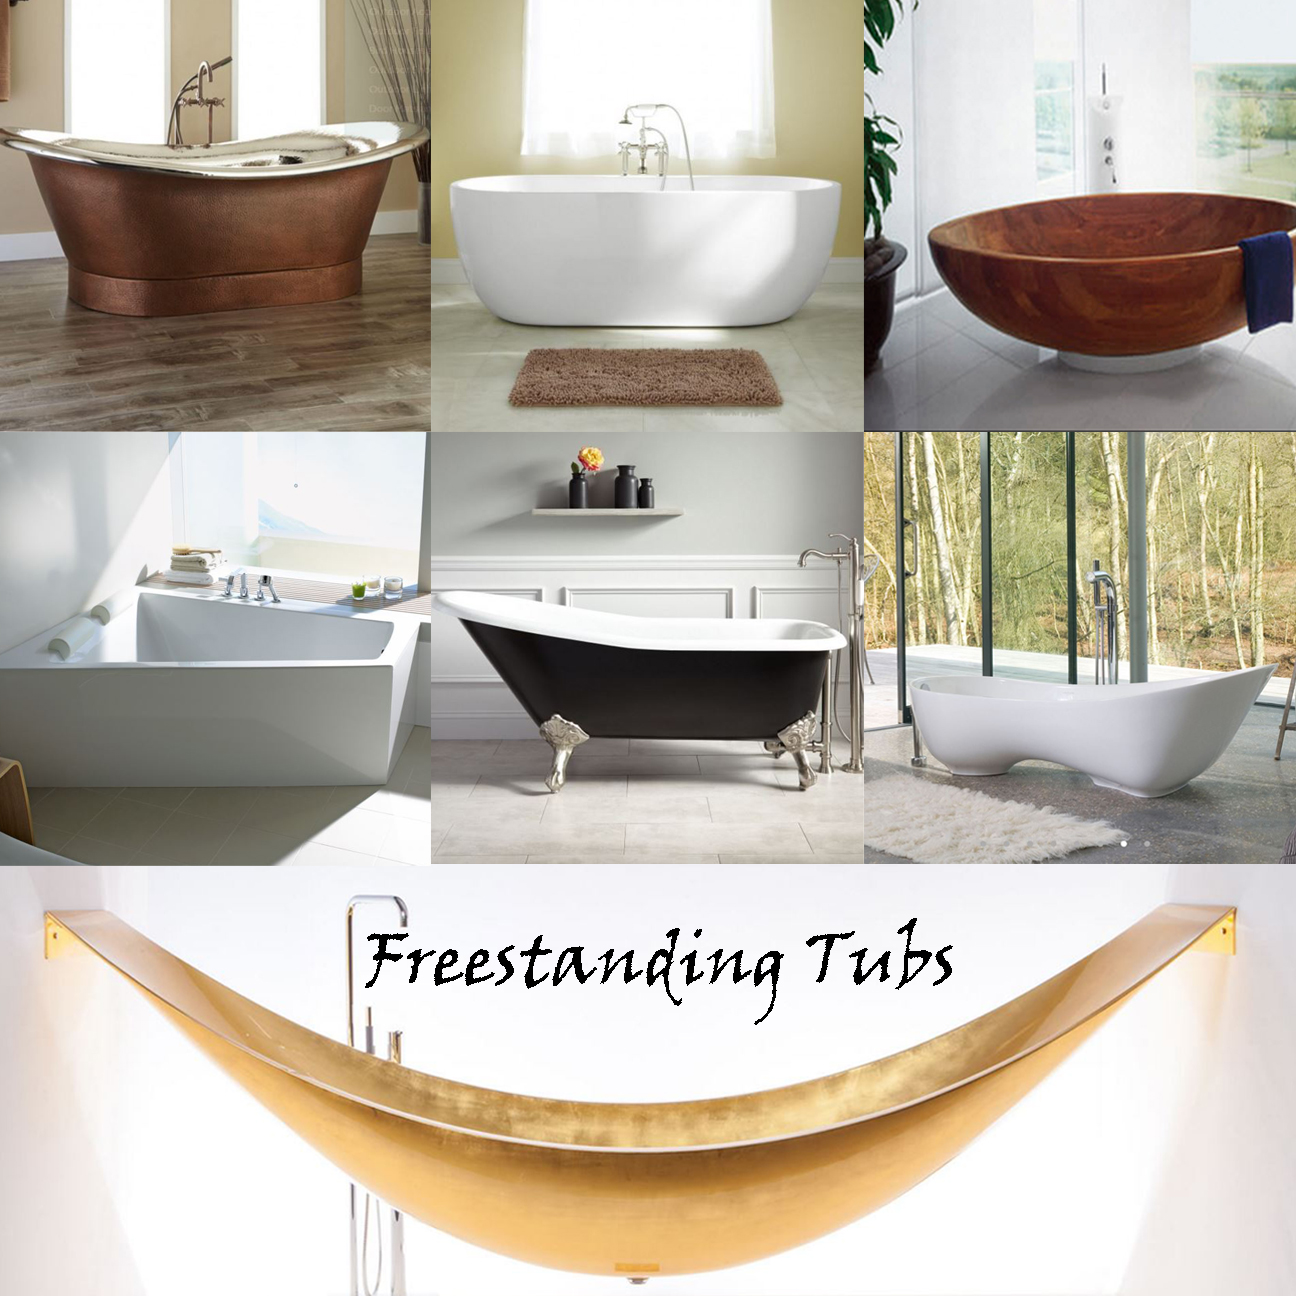 Romance with Freestanding tubs - Paula Ables Interiors